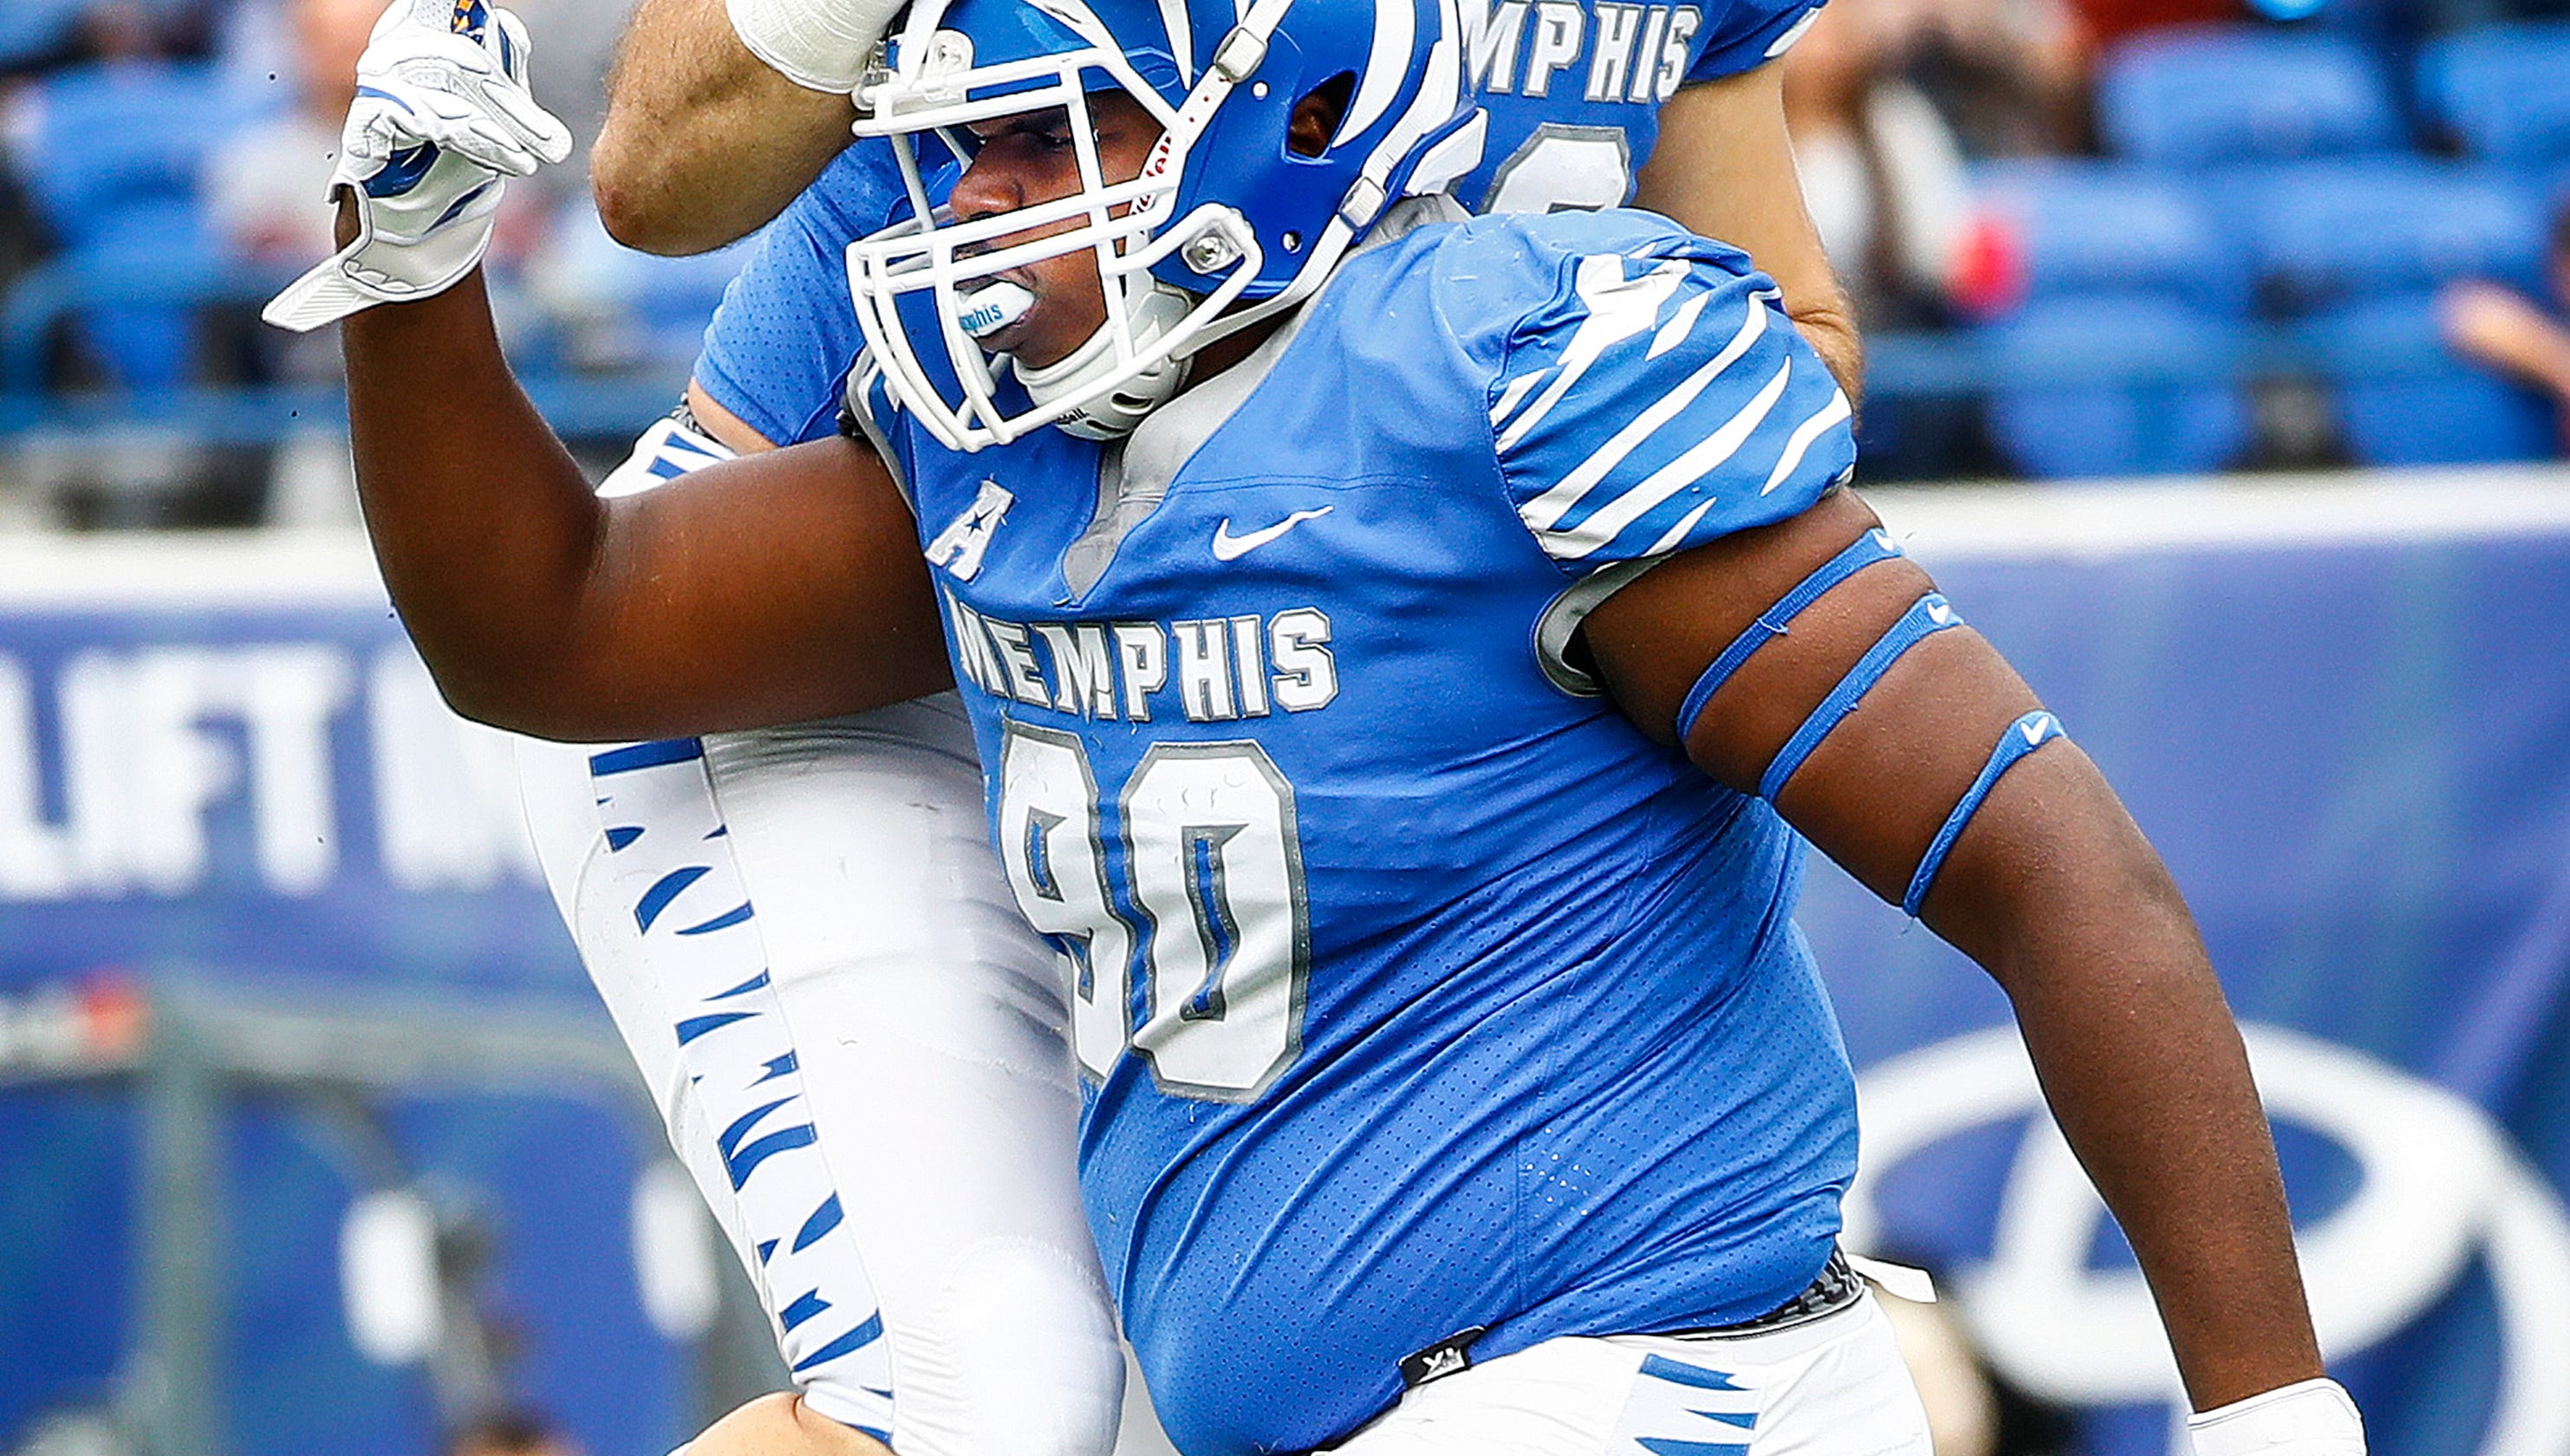 Memphis-Missouri football  5 things to know for Saturday s game 0c8ee2ebd